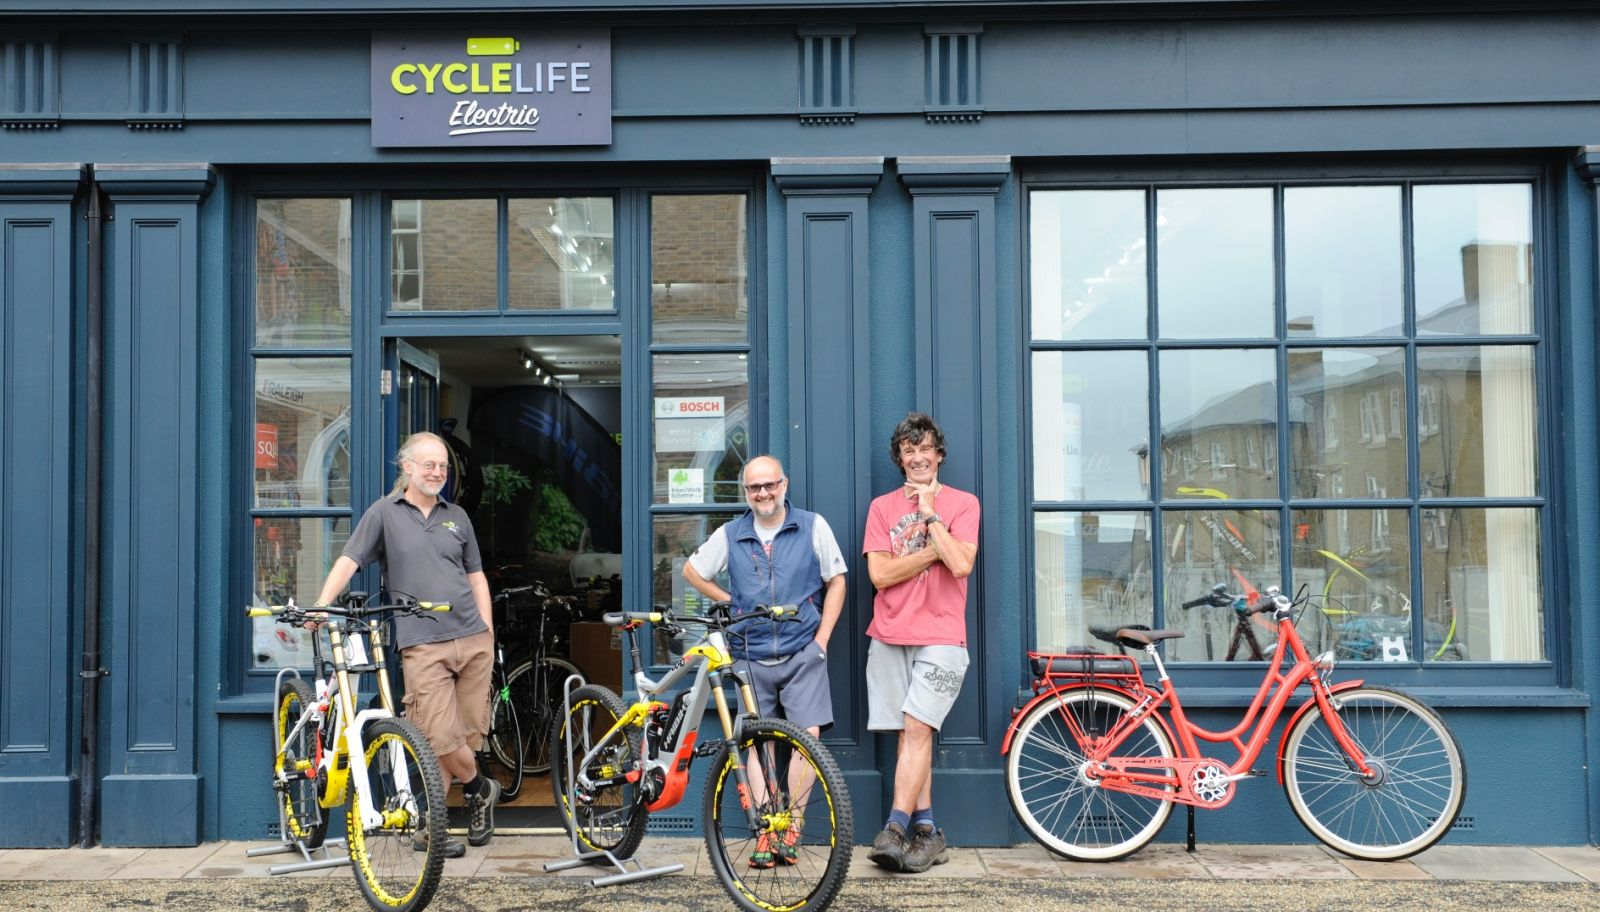 Cycle Life Electric